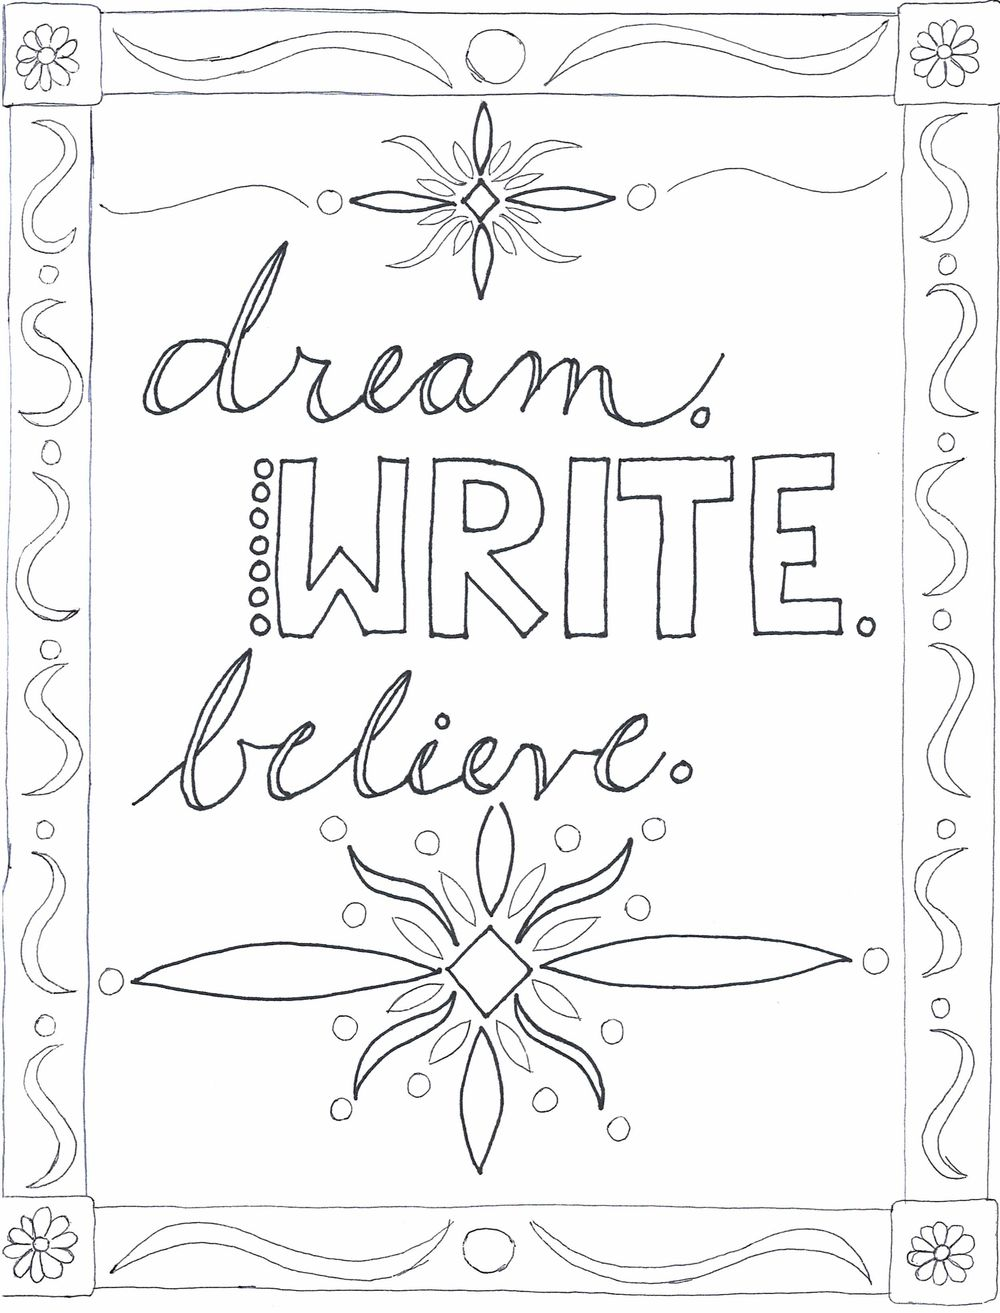 Dream, Write, Believe - First Colouring Page - image 1 - student project